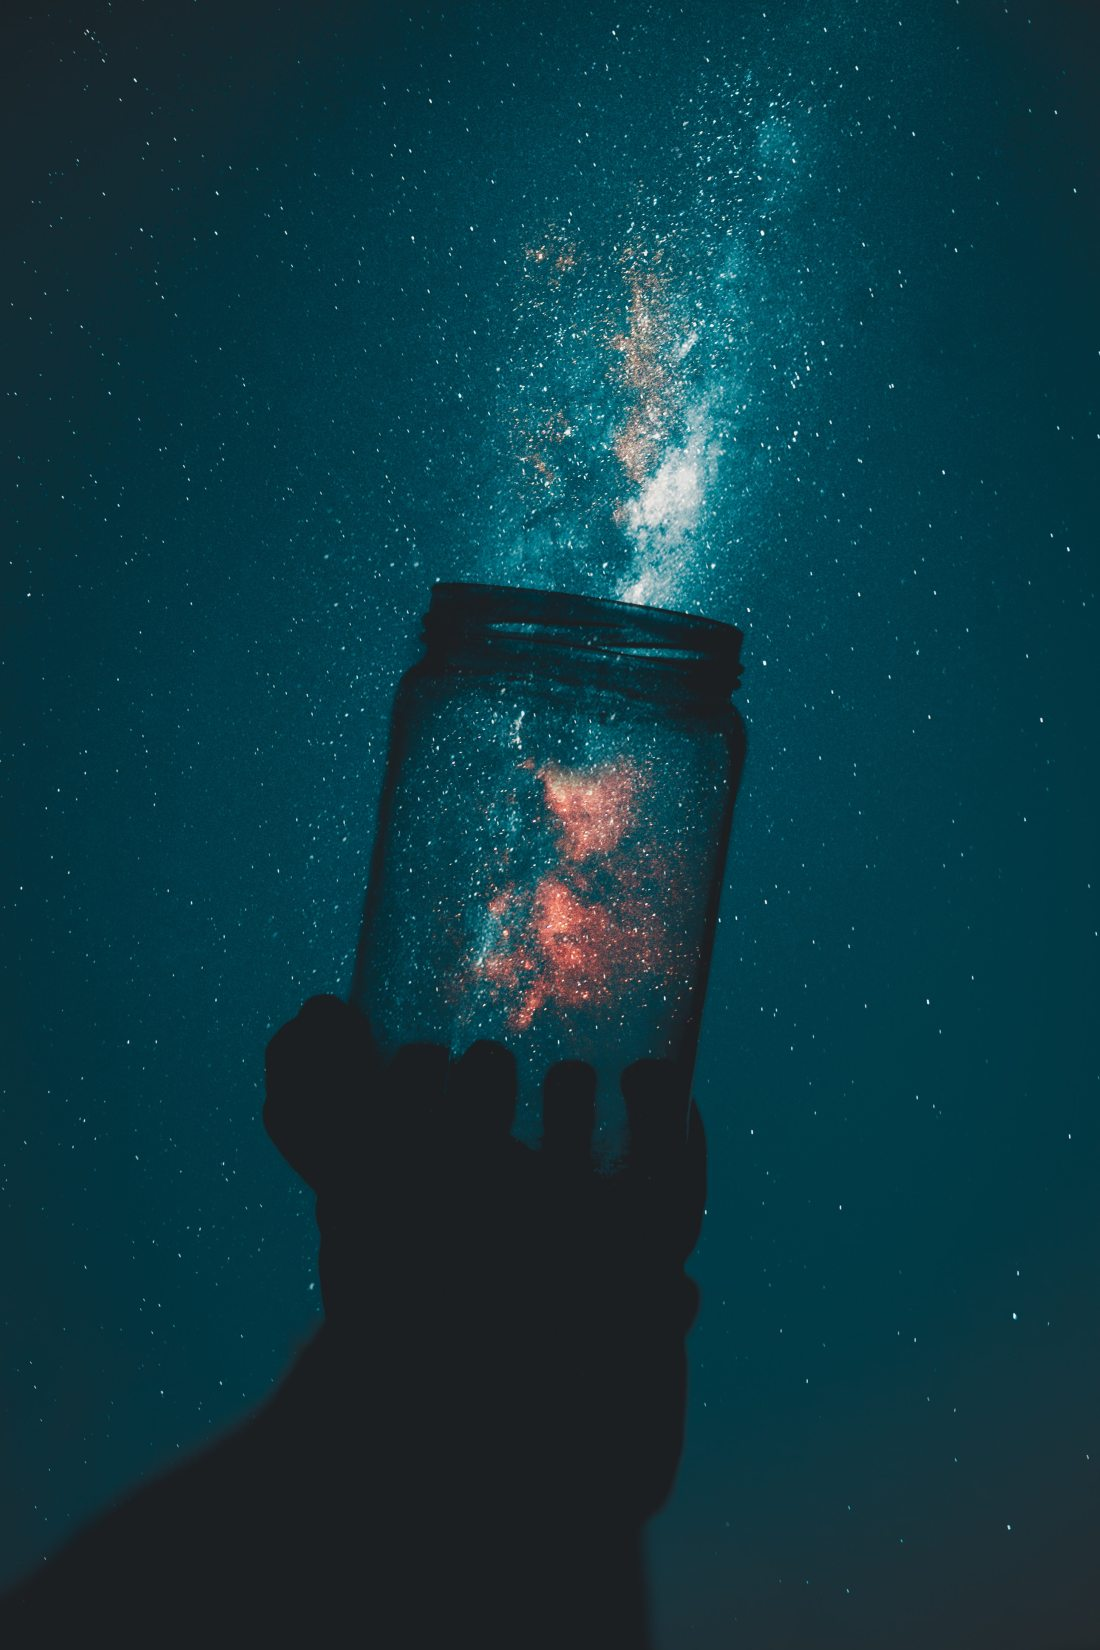 a cosmic cluster of stars in the night sky emerges from a glass jar